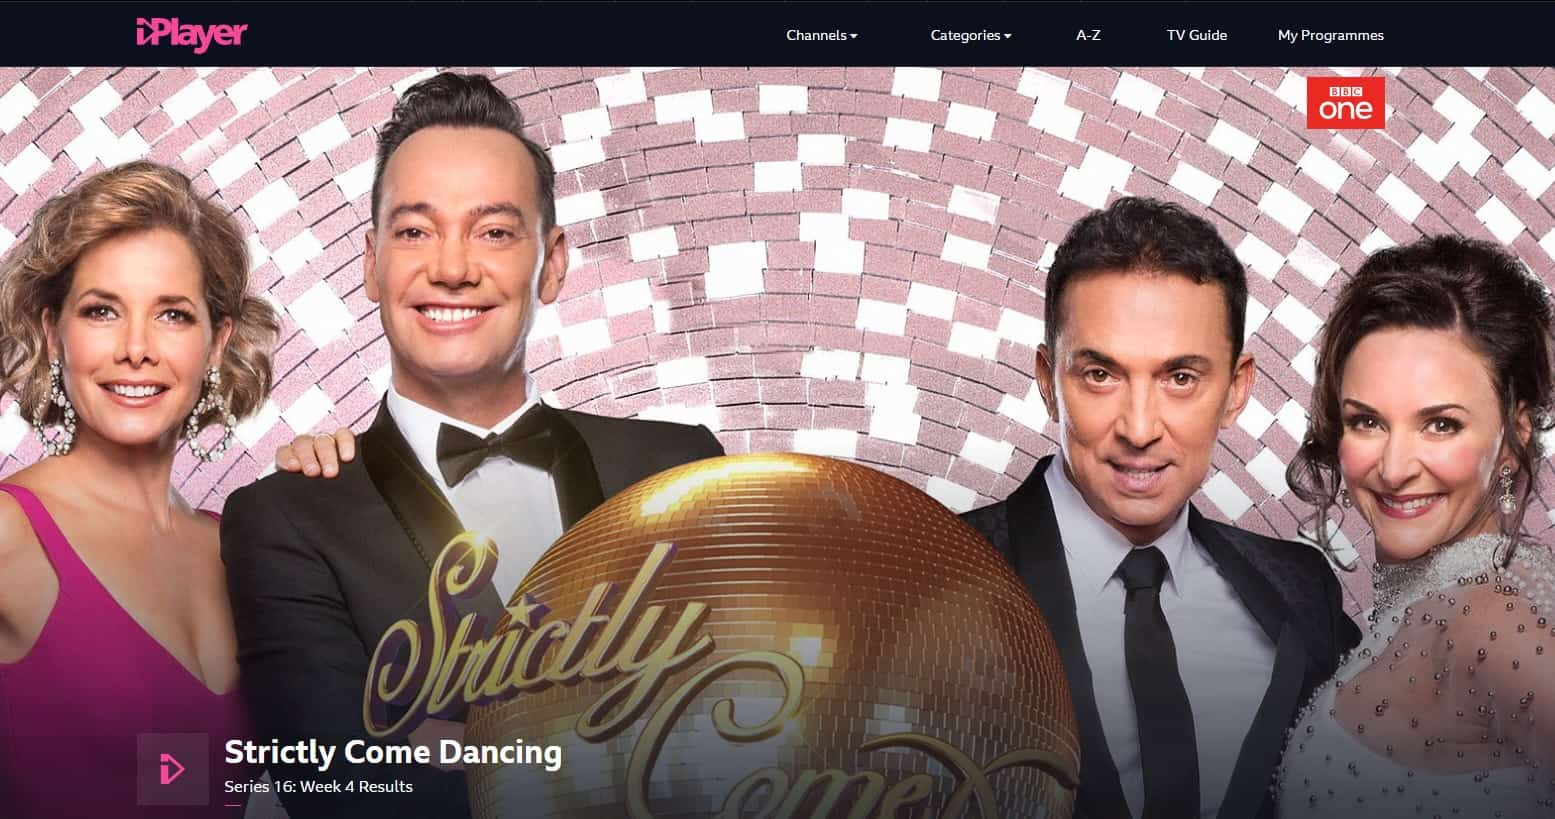 How to watch Strictly Come Dancing live online from abroad